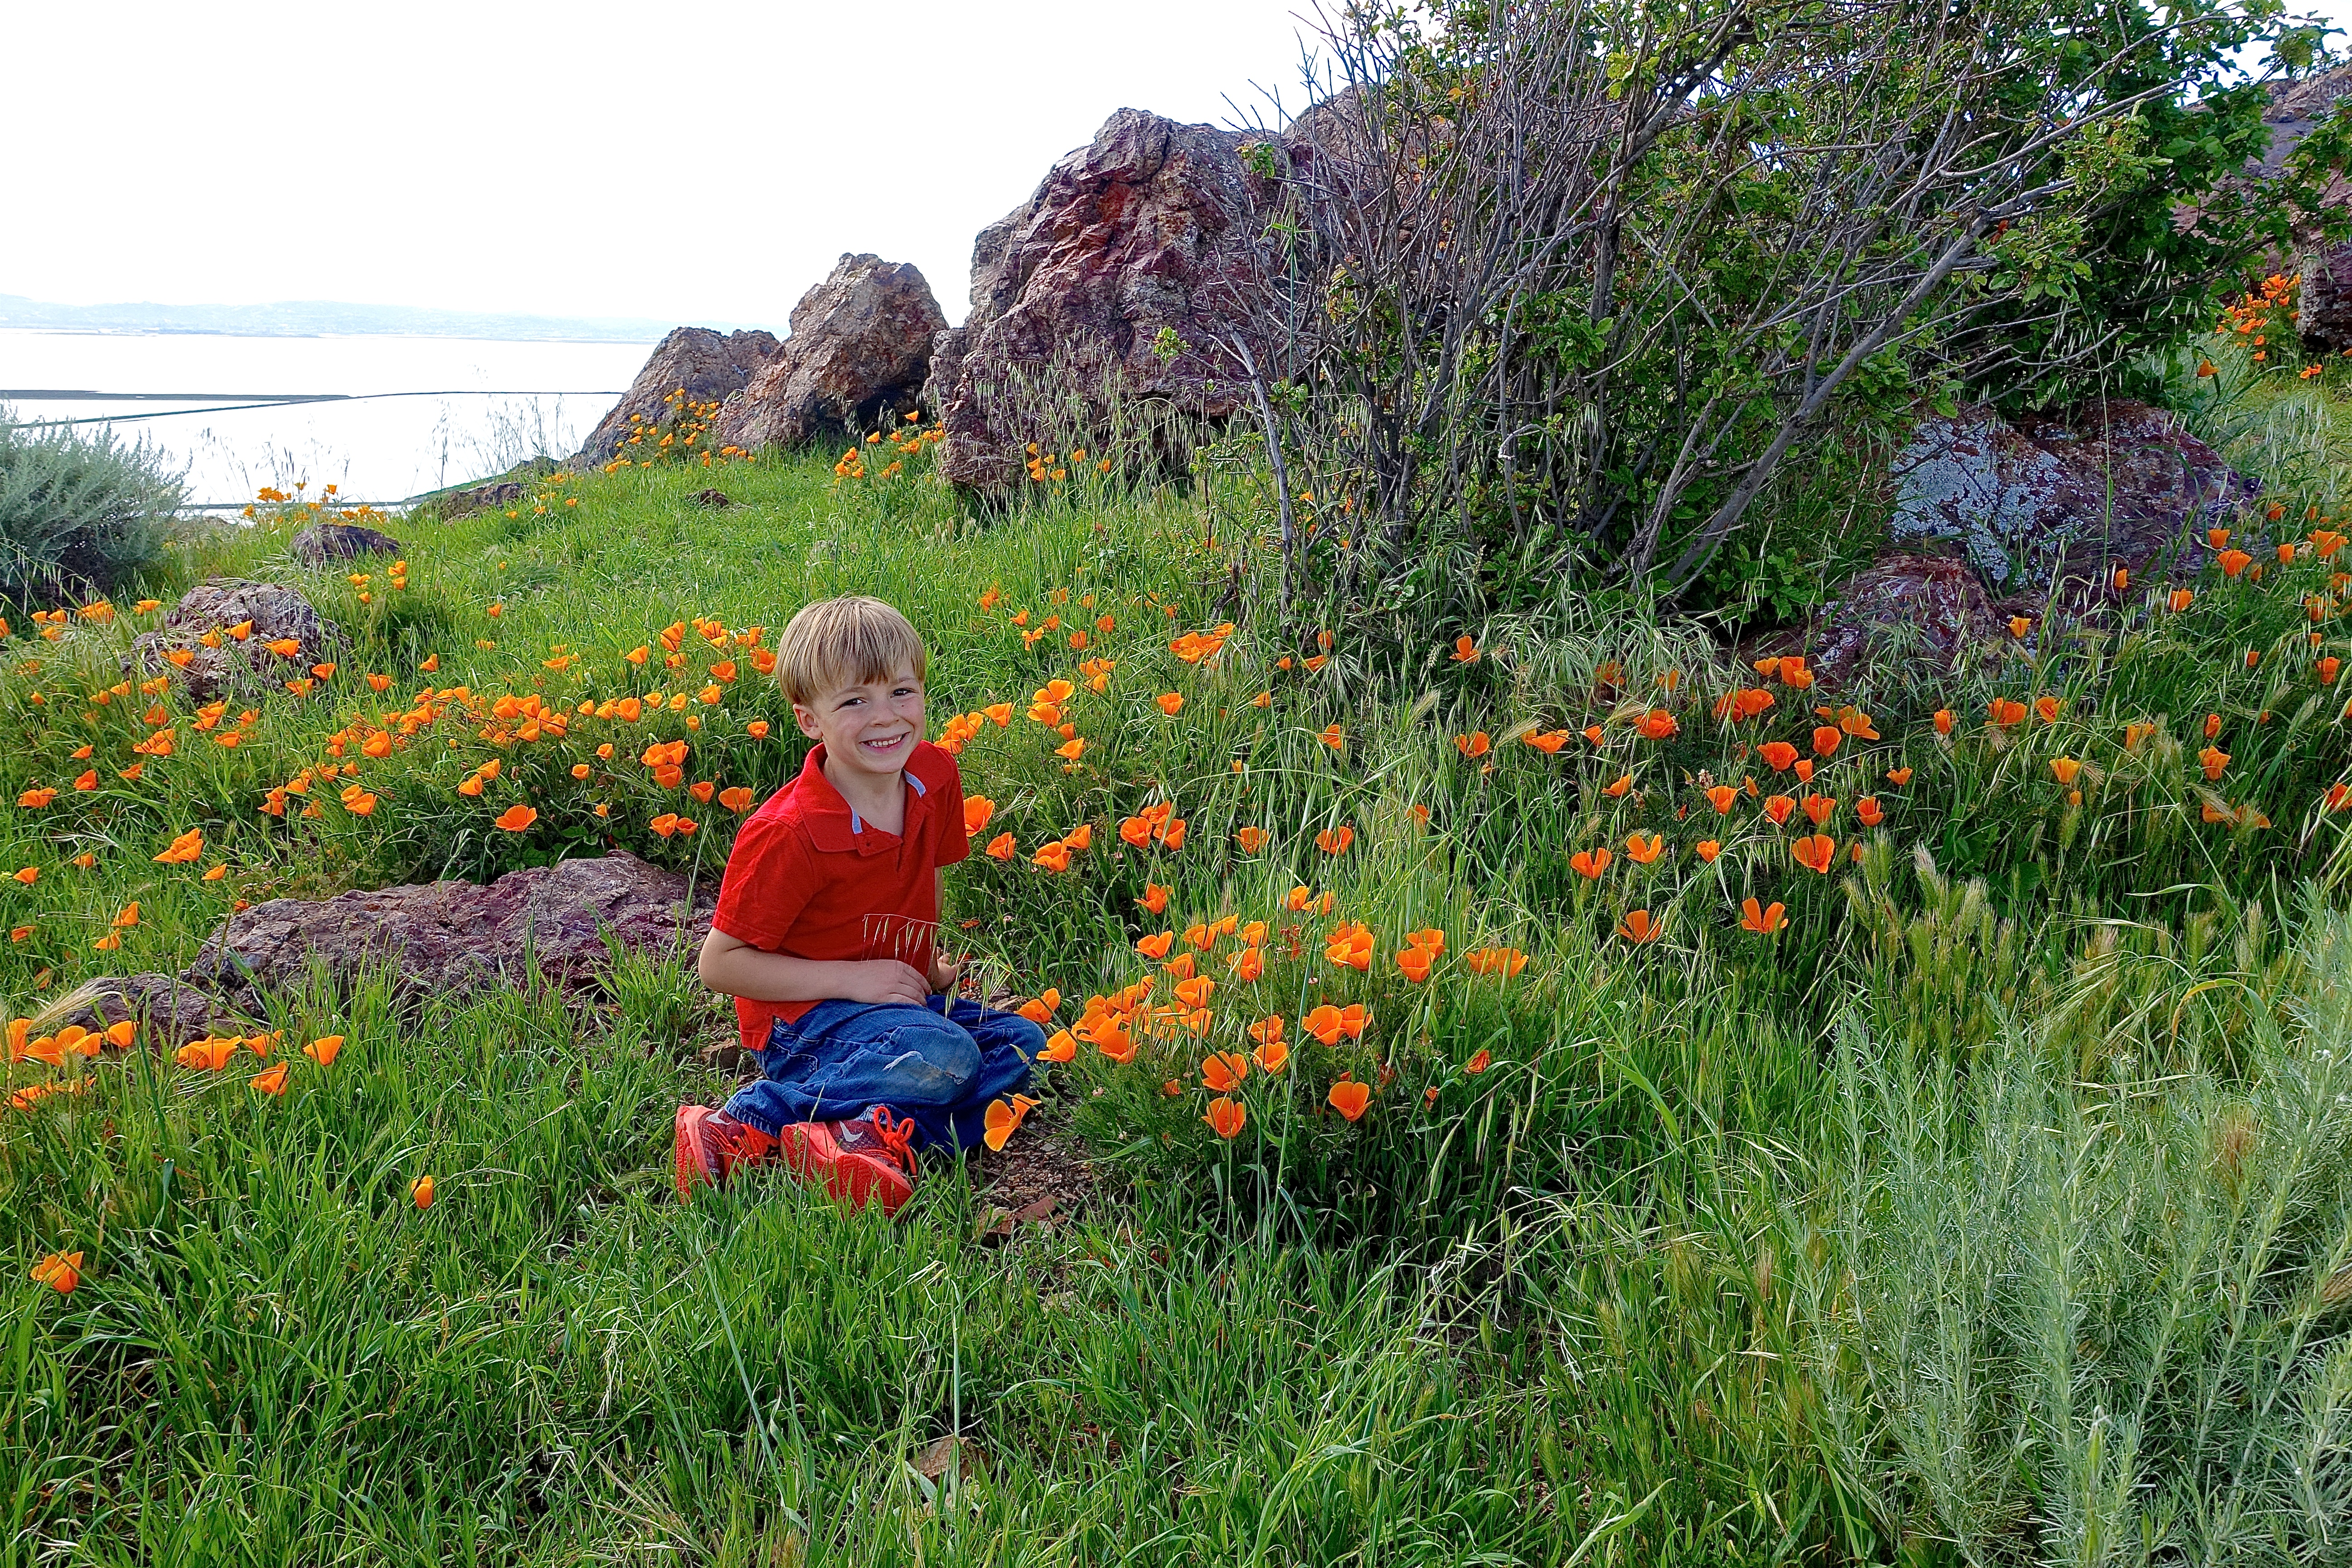 Poppies in Coyote Hills Regional Park